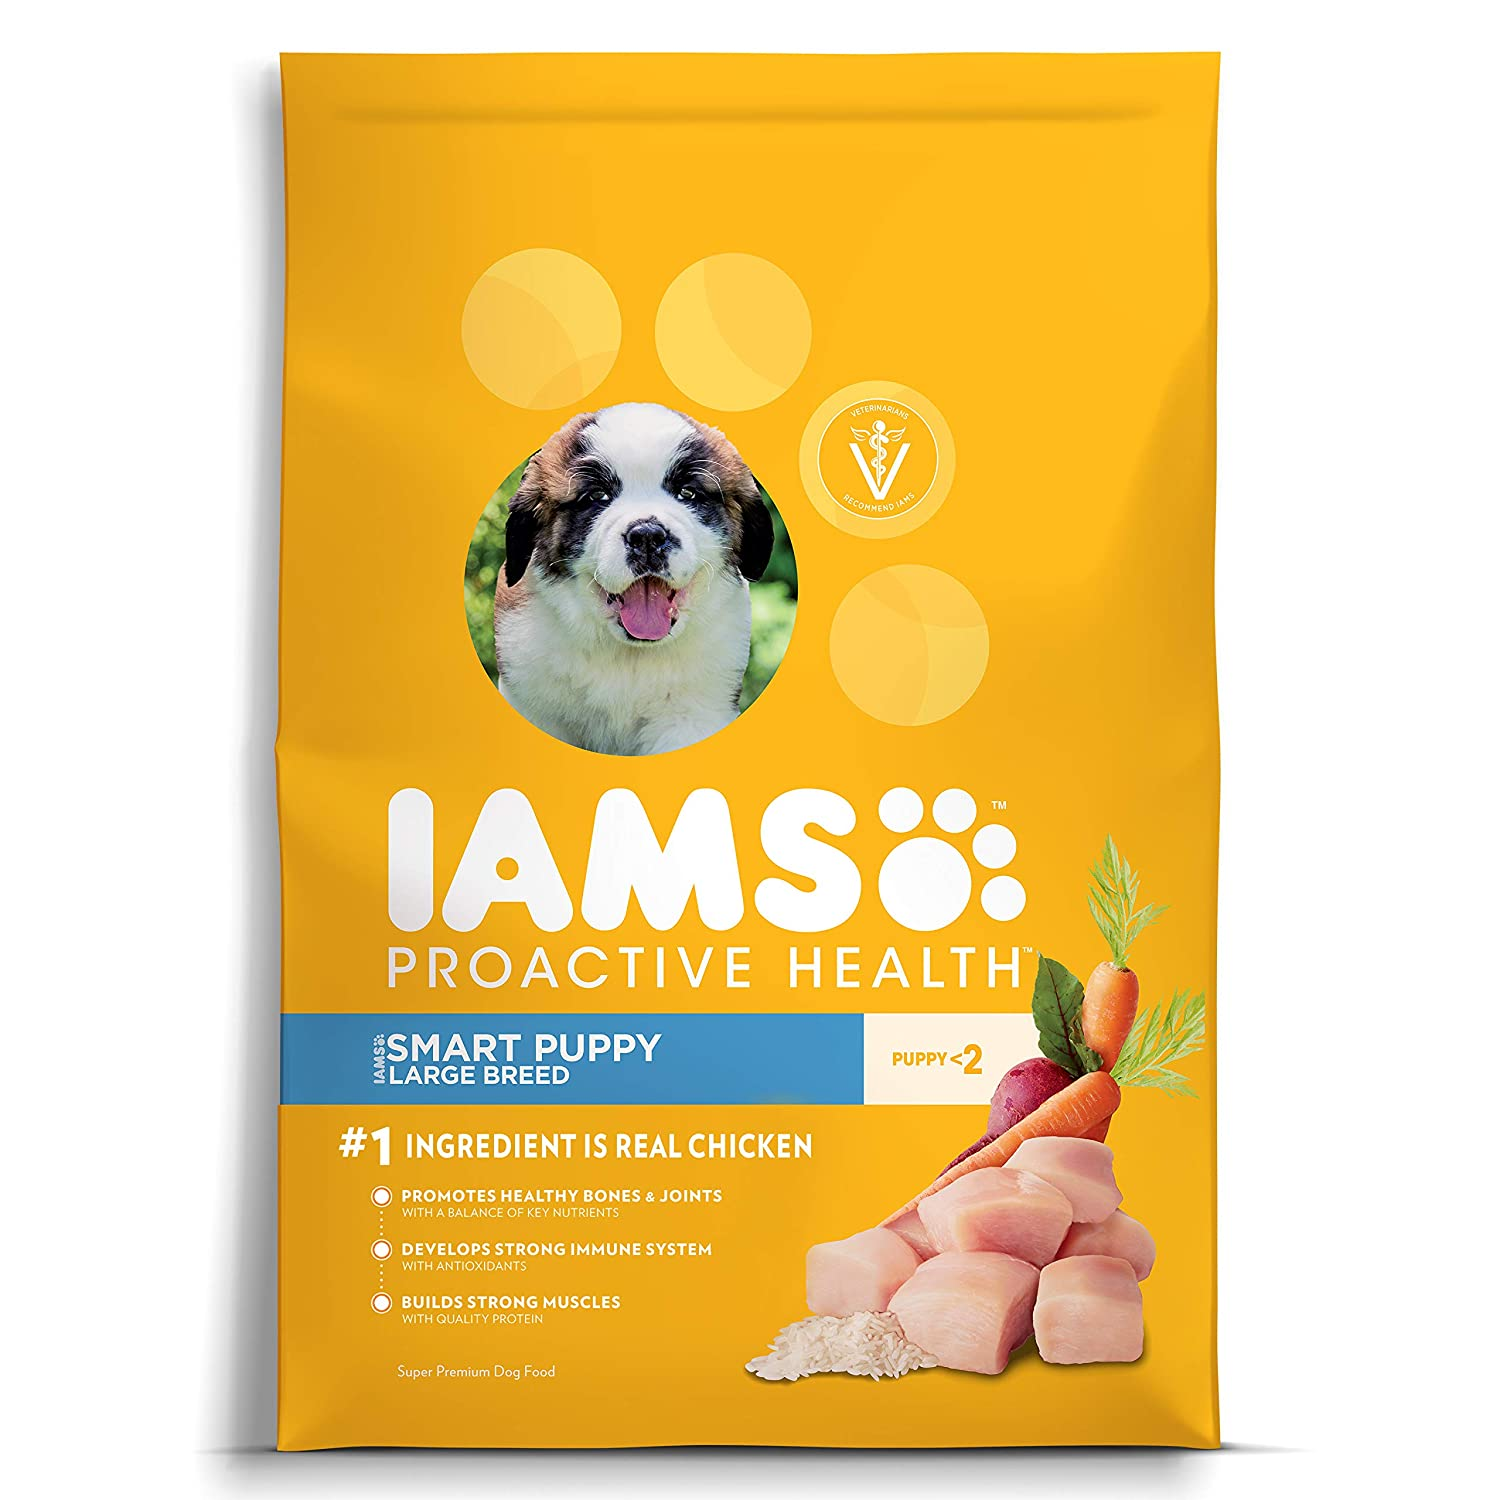 IAMS proactive health puppy dry food